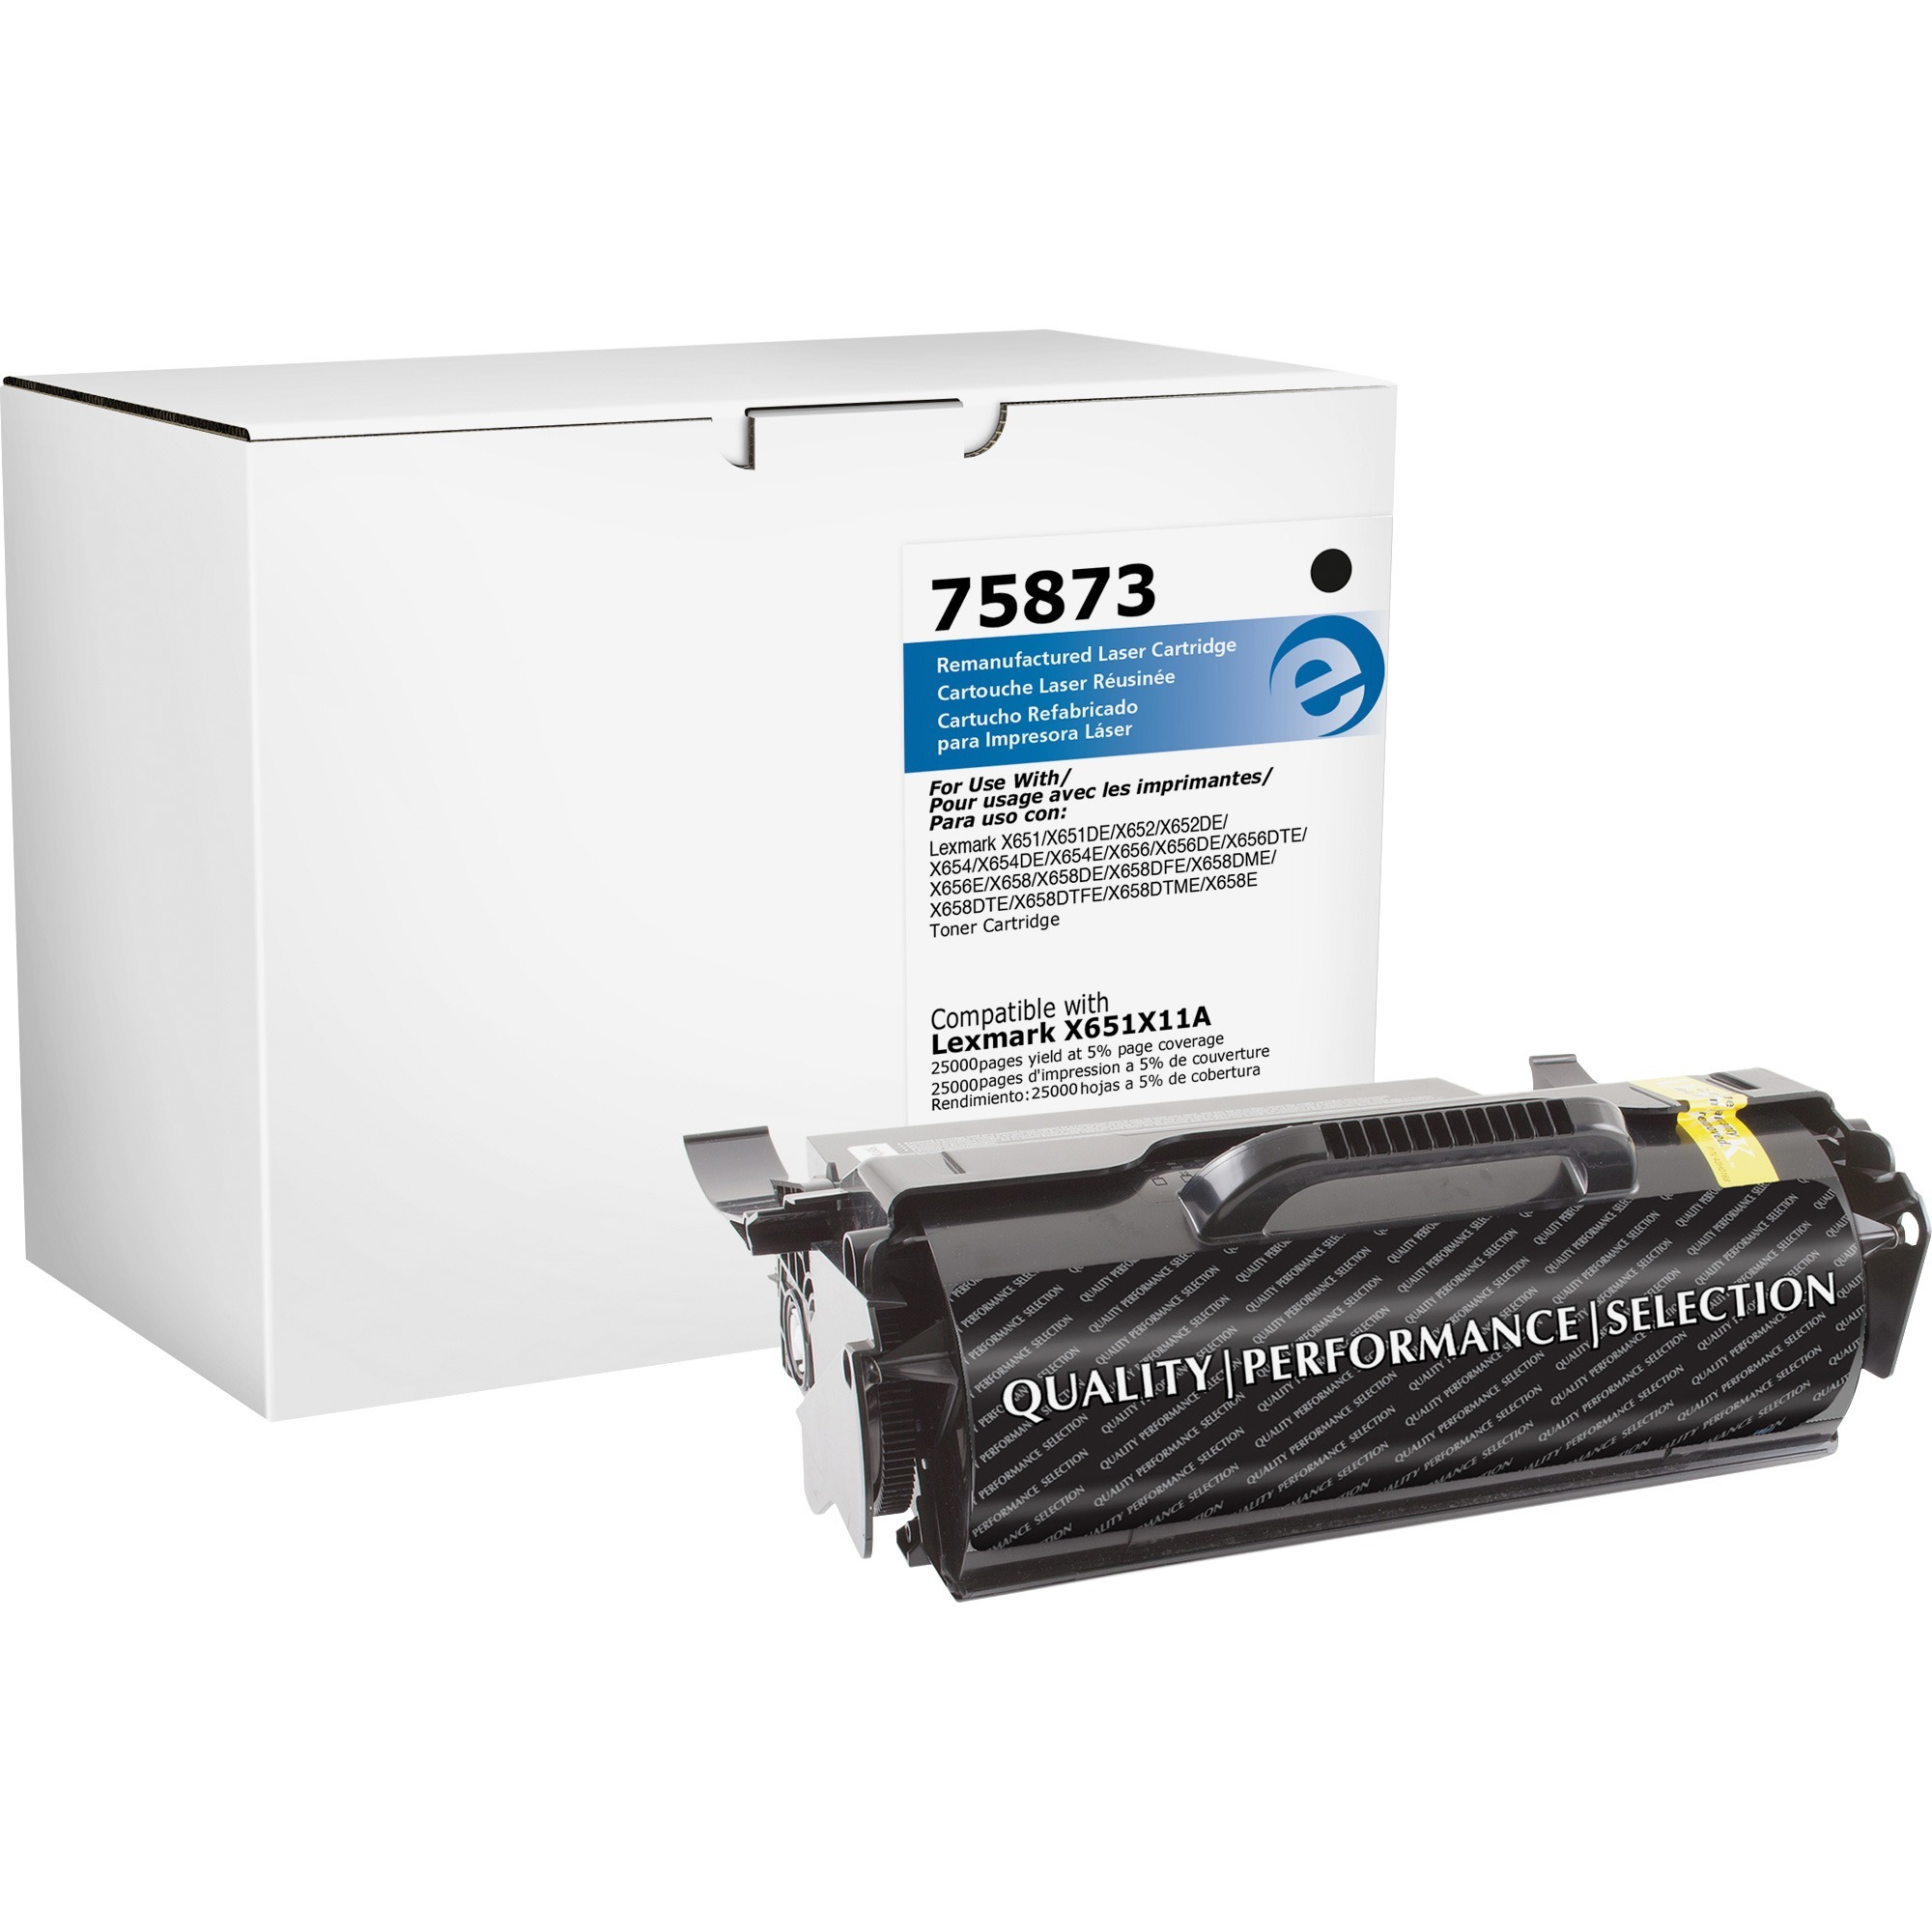 Elite Image, ELI75873, 75873 Remanufactured Lexmark H.Yld Tnr Cartridge, 1 Each